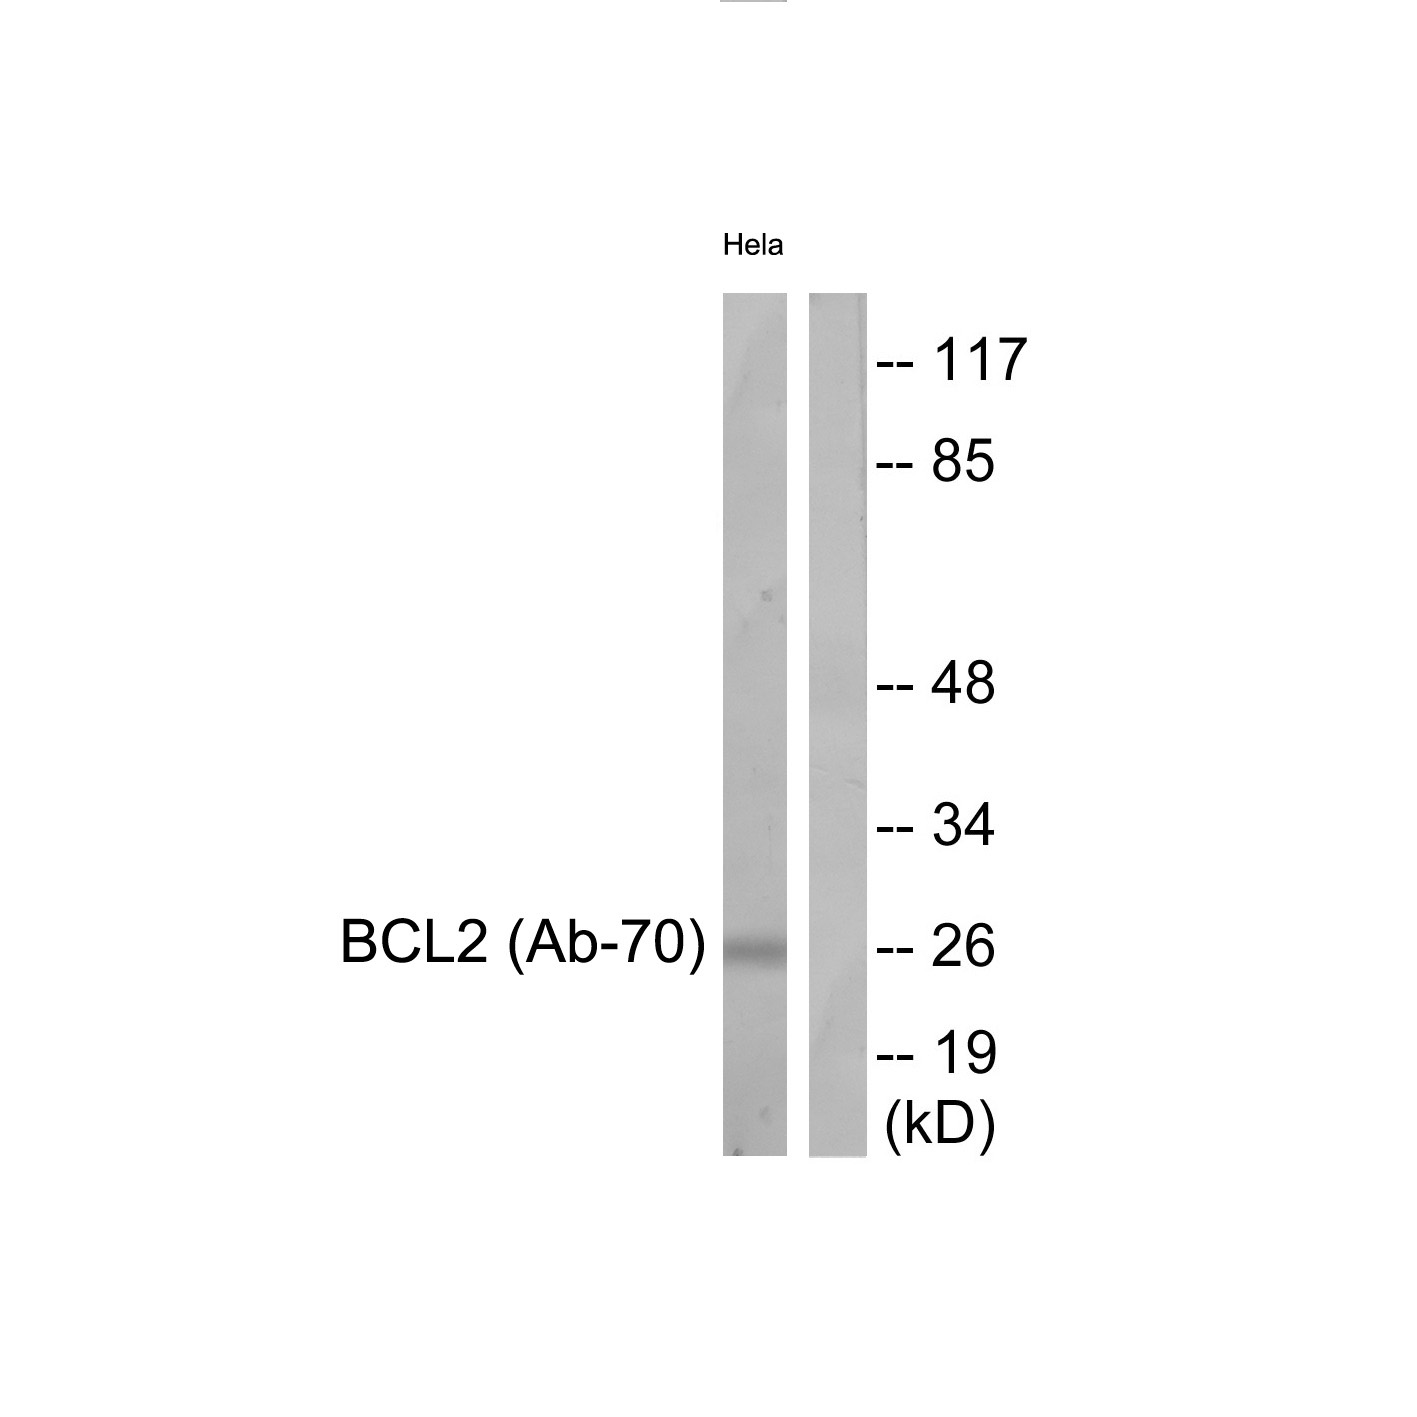 BCL2 Antibody (OAAF01690) in HeLa cells using Western Blot